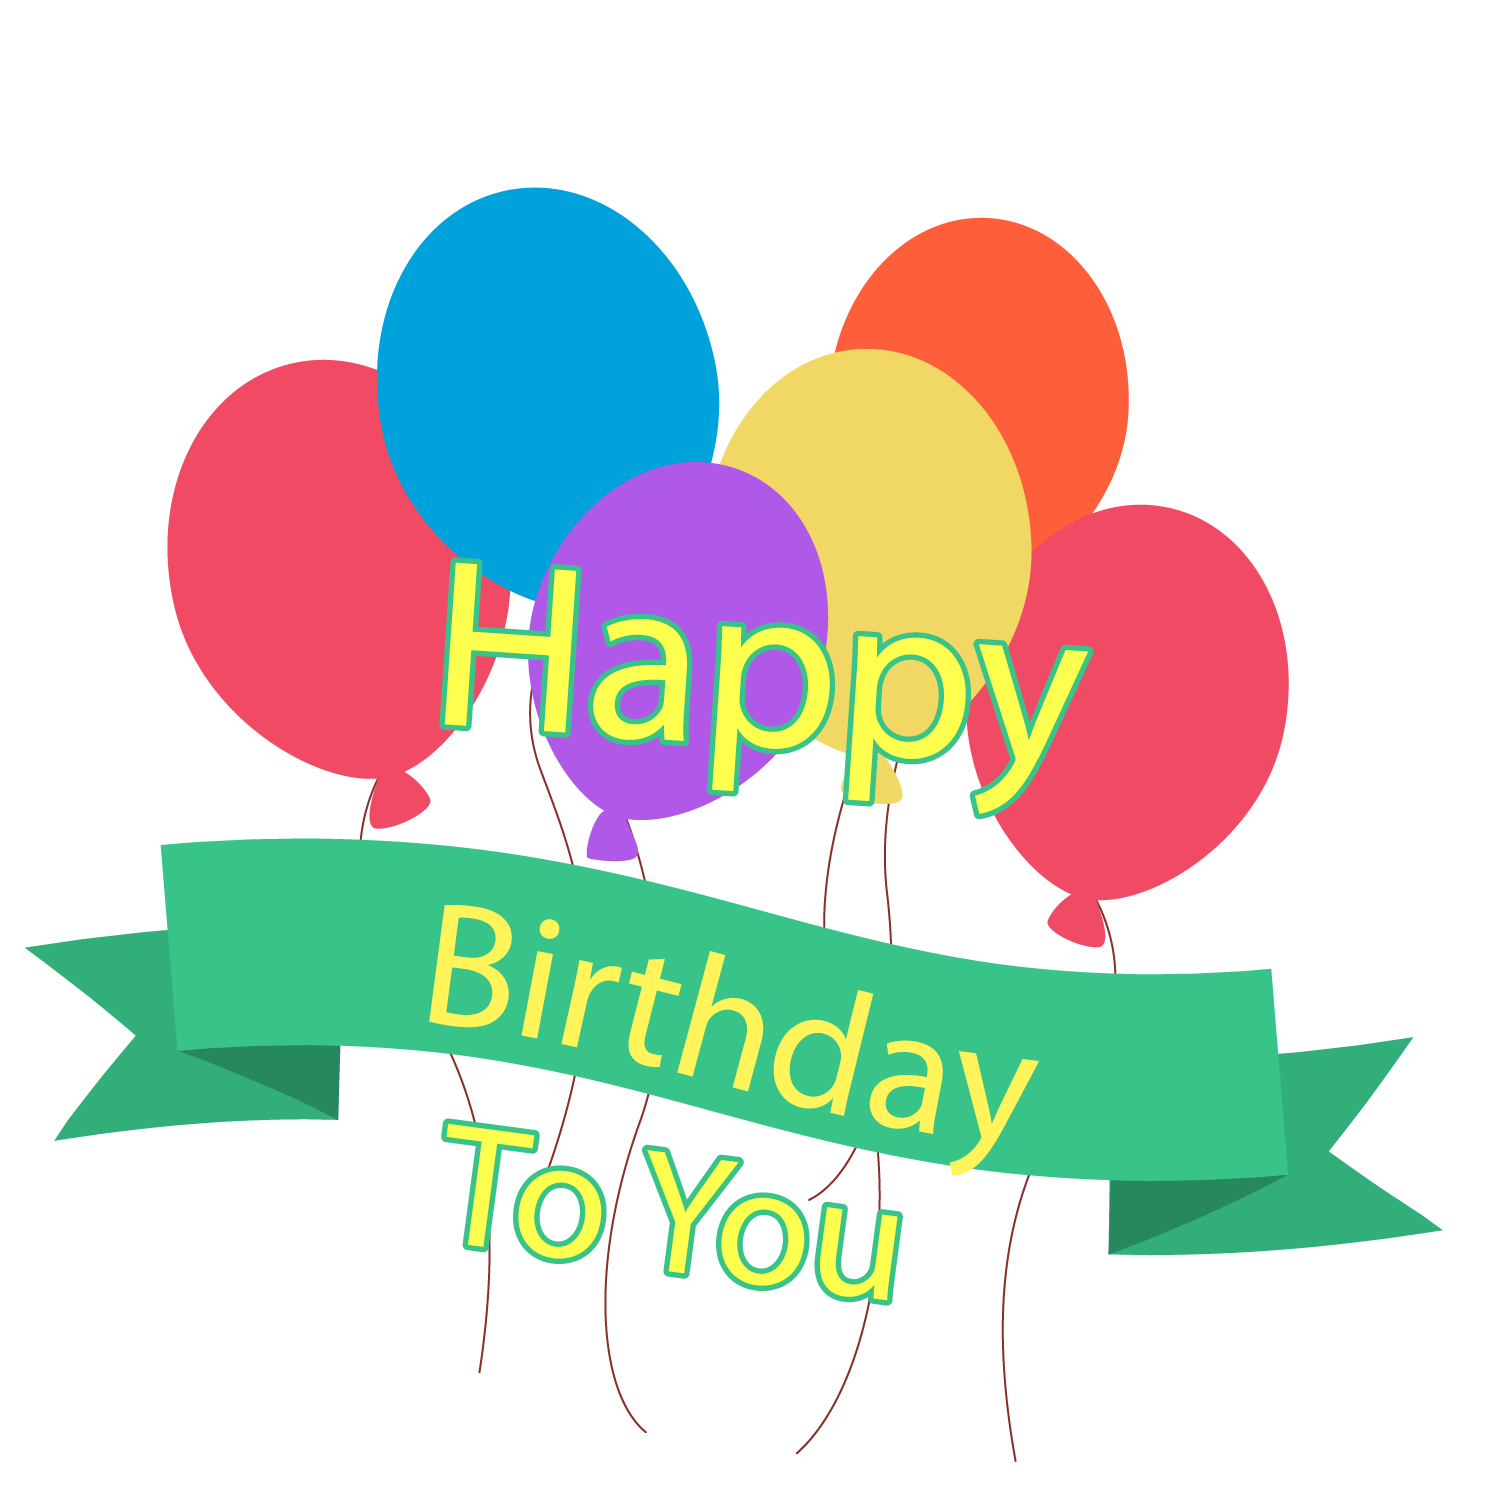 clip art royalty free download Birthday cake Happy Birthday to You